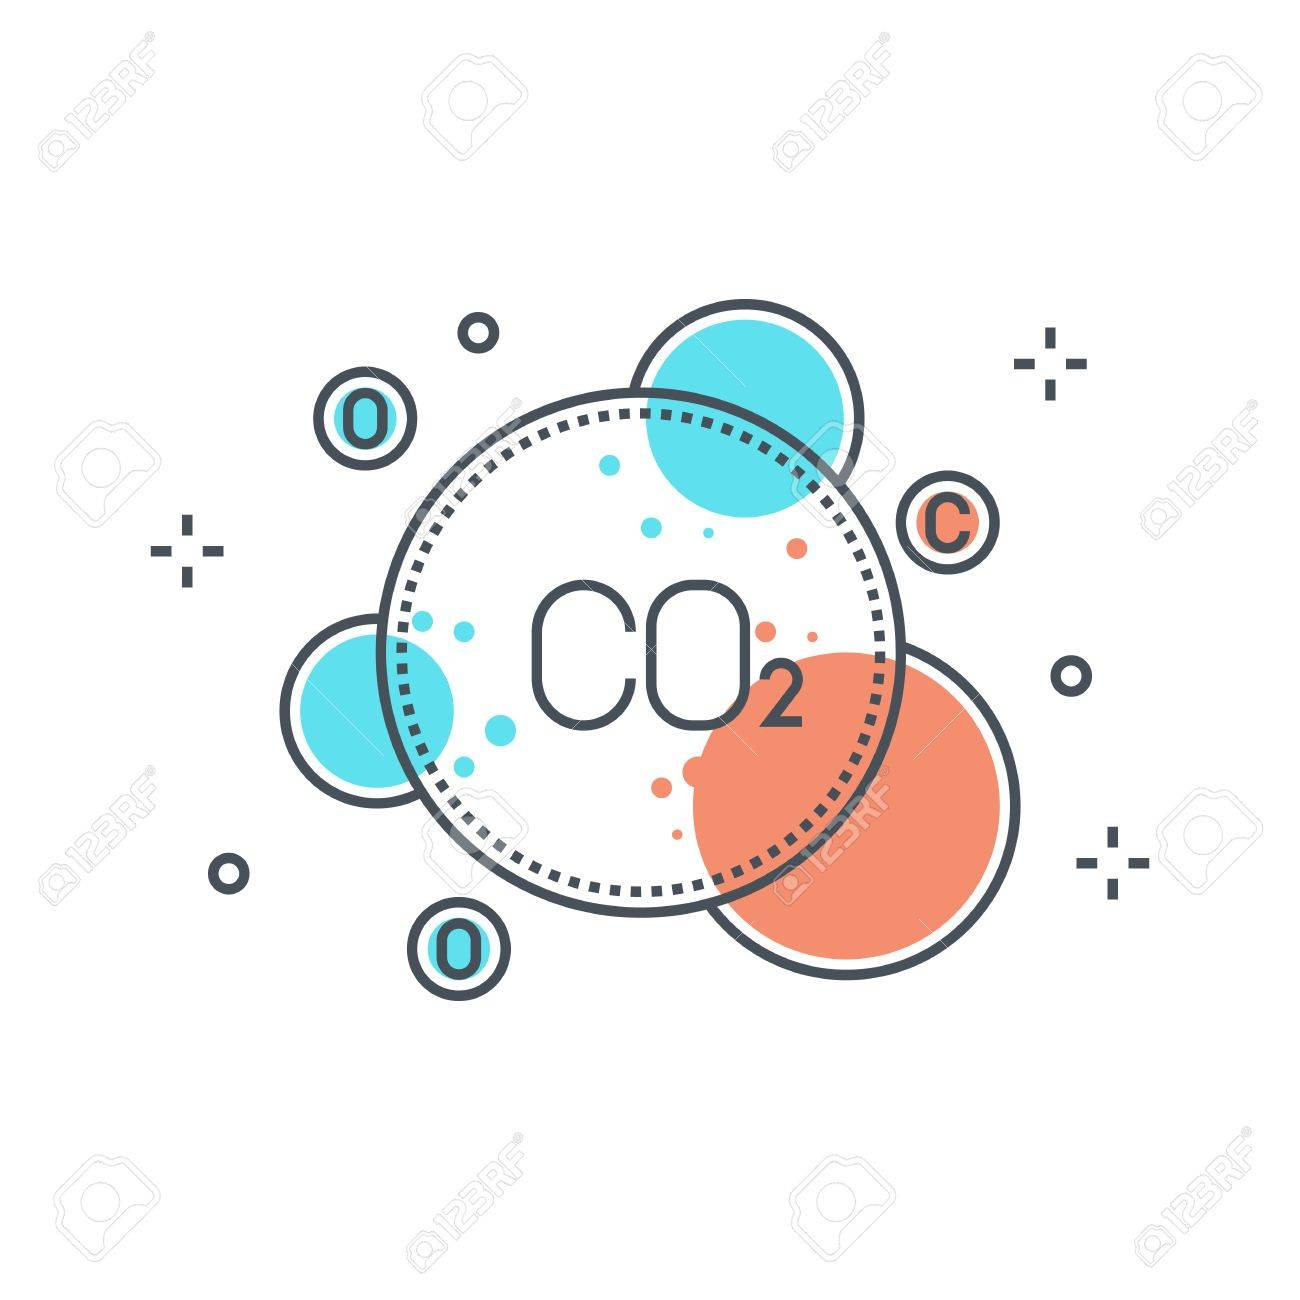 Color line, pollution concept illustration, icon, background and graphics. The illustration is colorful, flat, vector, pixel perfect, suitable for web and print. It is linear stokes and fills. - 69210112